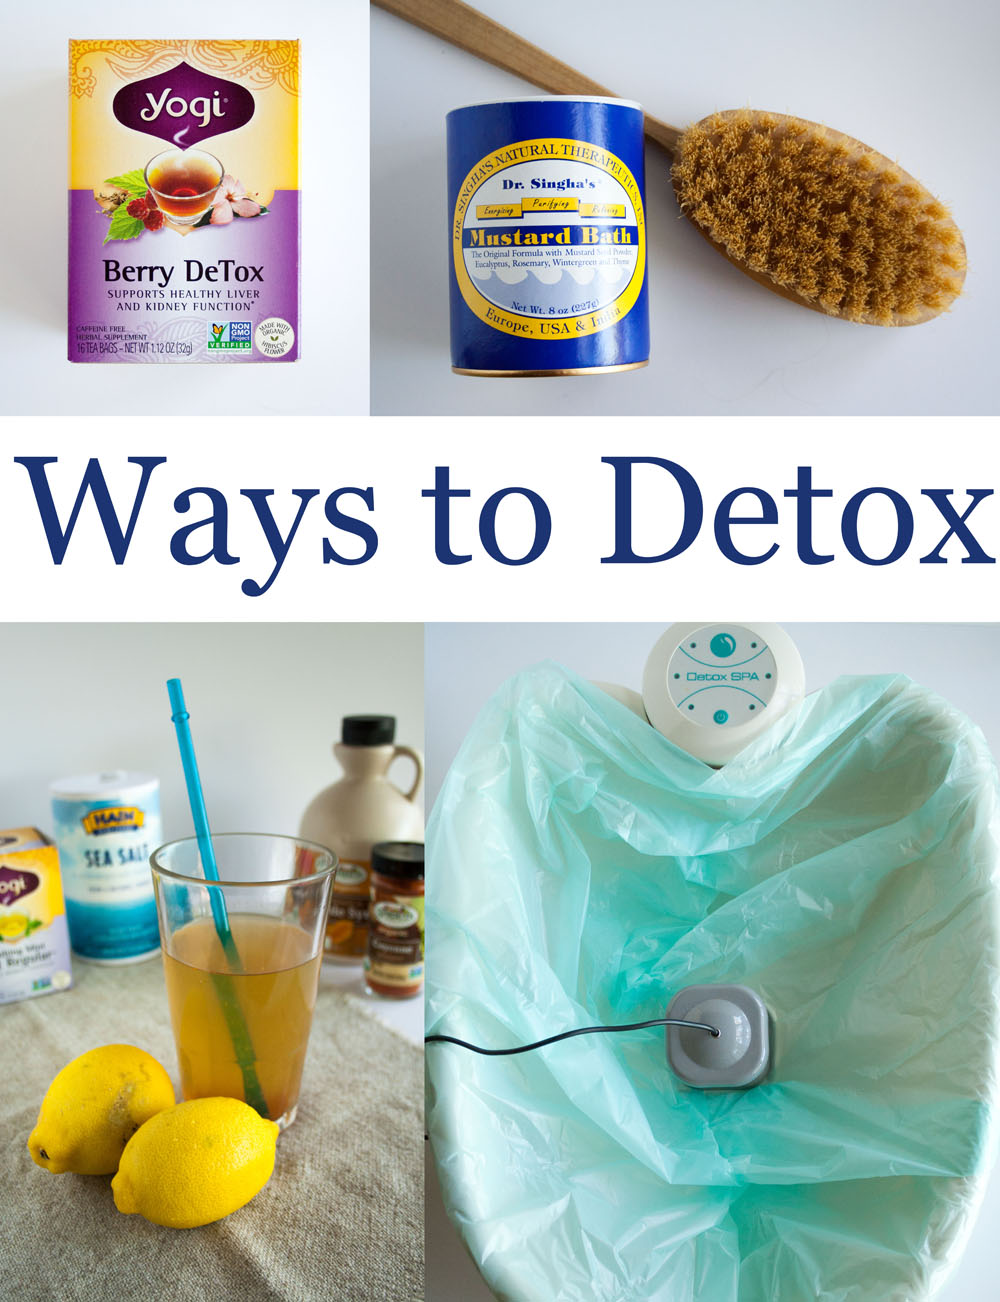 Ways to Detox collage photo with tea, foot bath, dry brush, and lemonade drink.